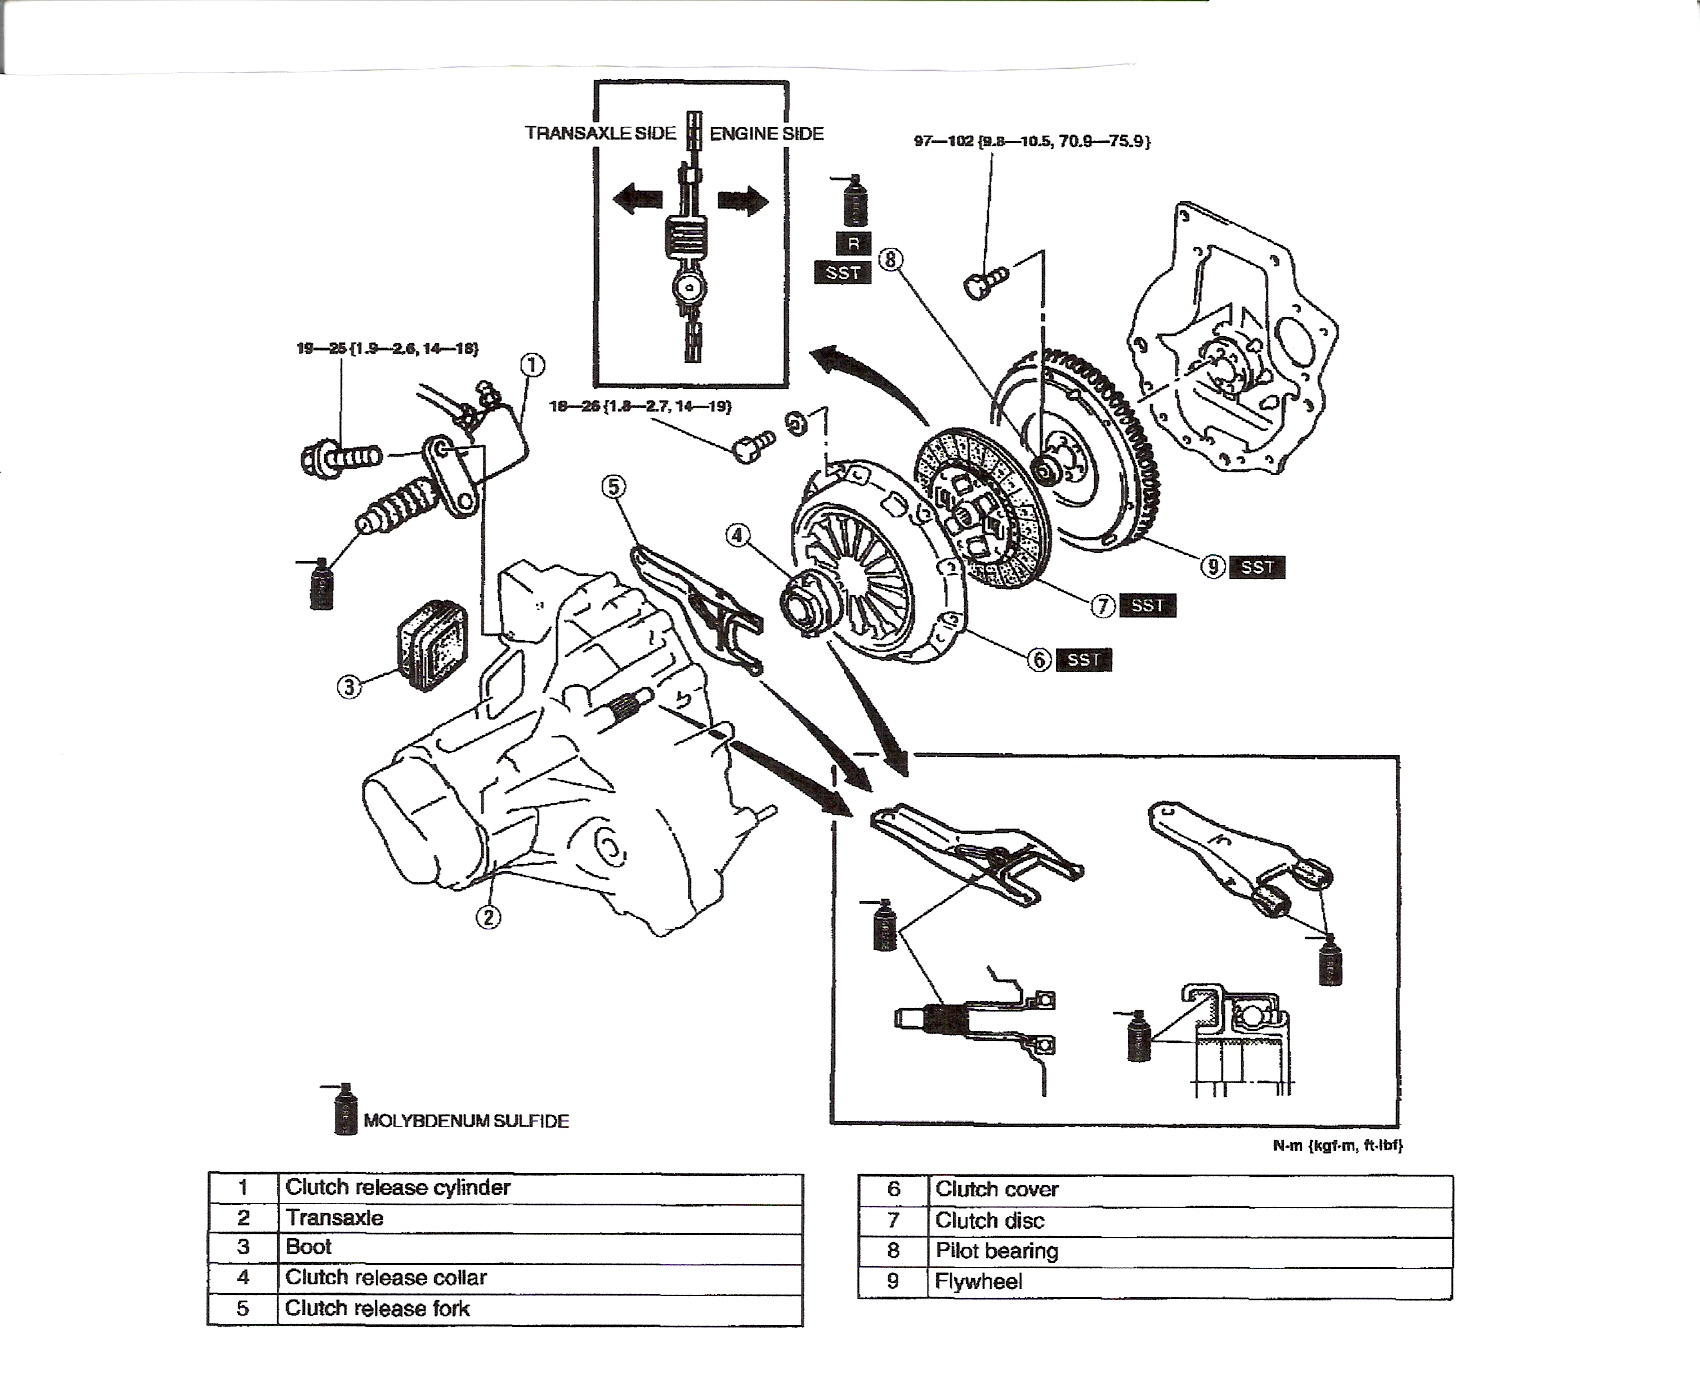 2003 mazda protege sd engine diagram  2003  free engine